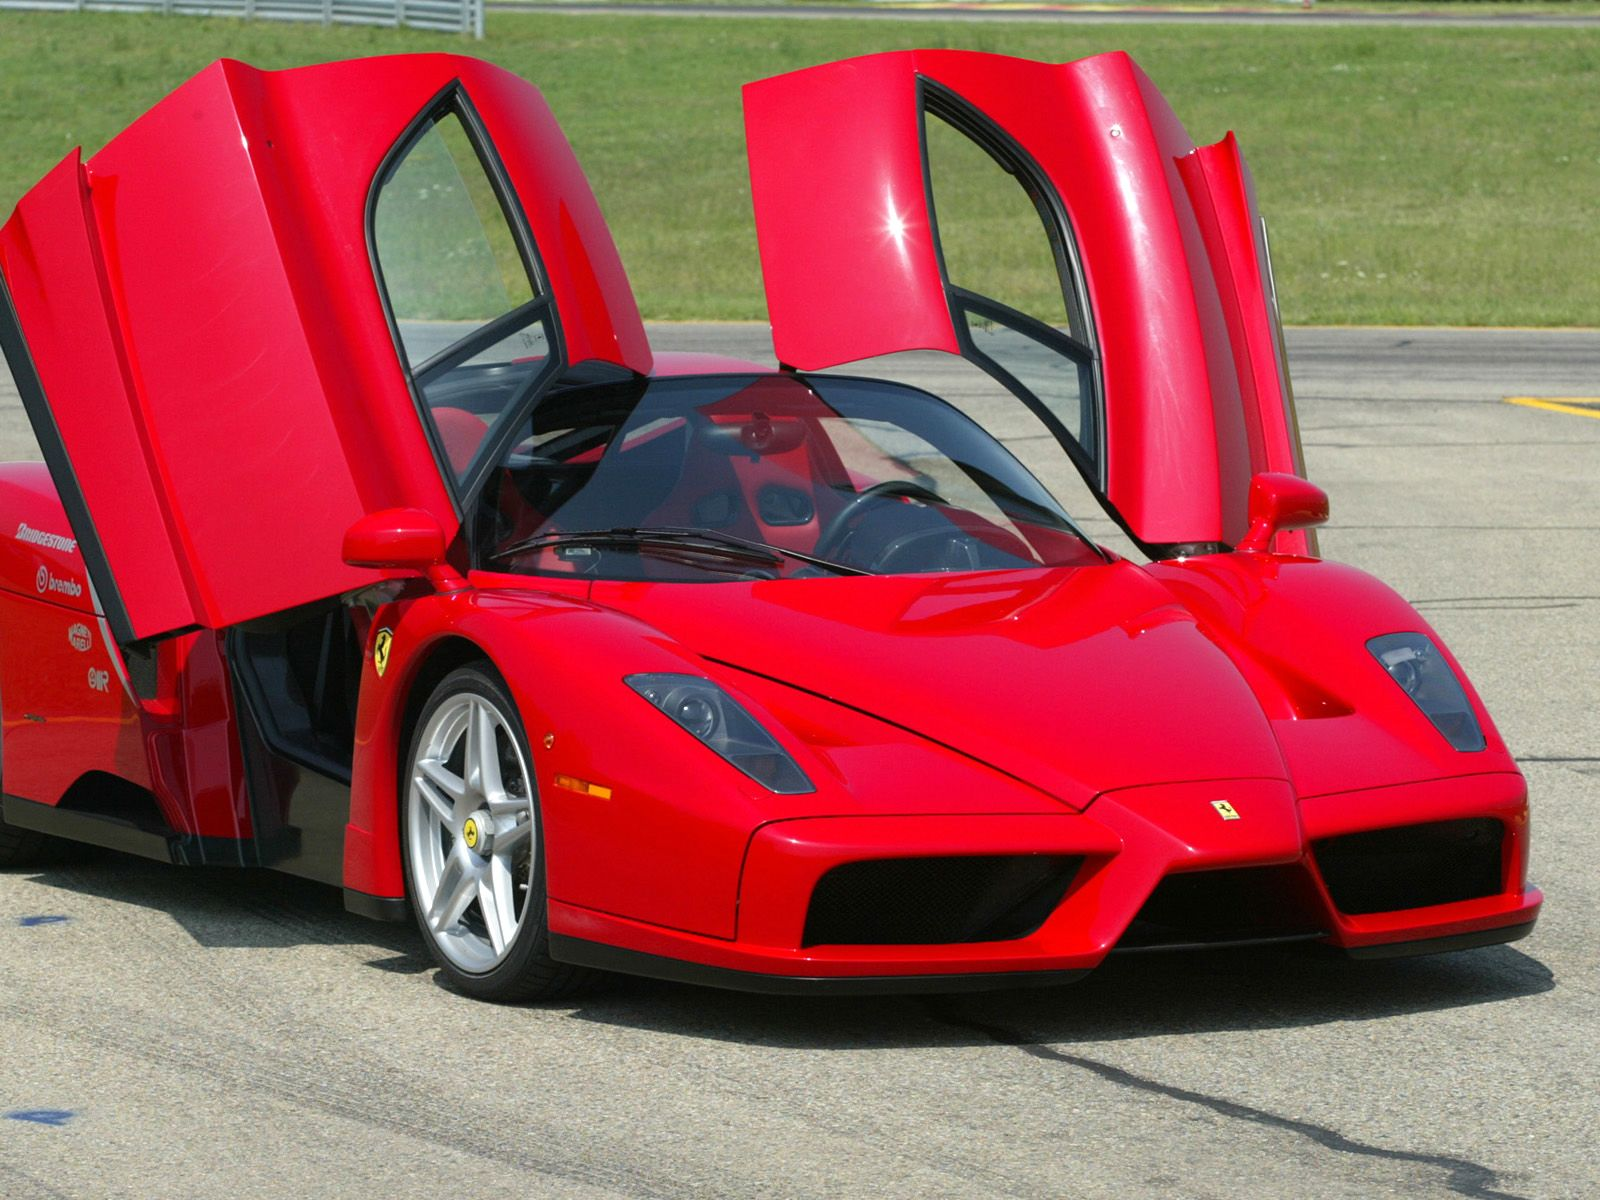 Ferrari Enzo Technical Specifications And Fuel Economy